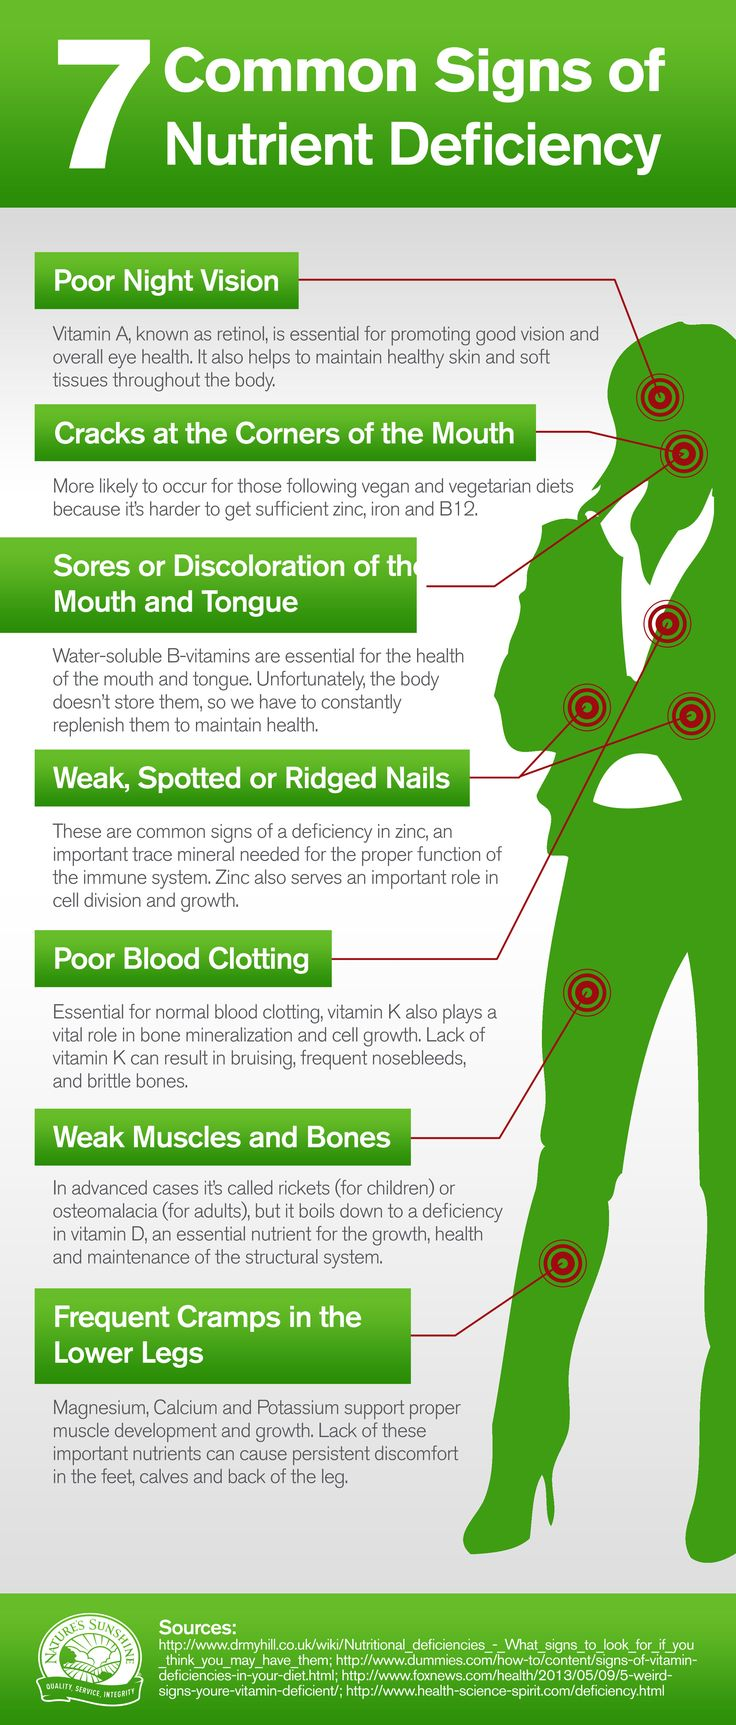 7 Common Signs of Nutrient Deficiency [Infographic]